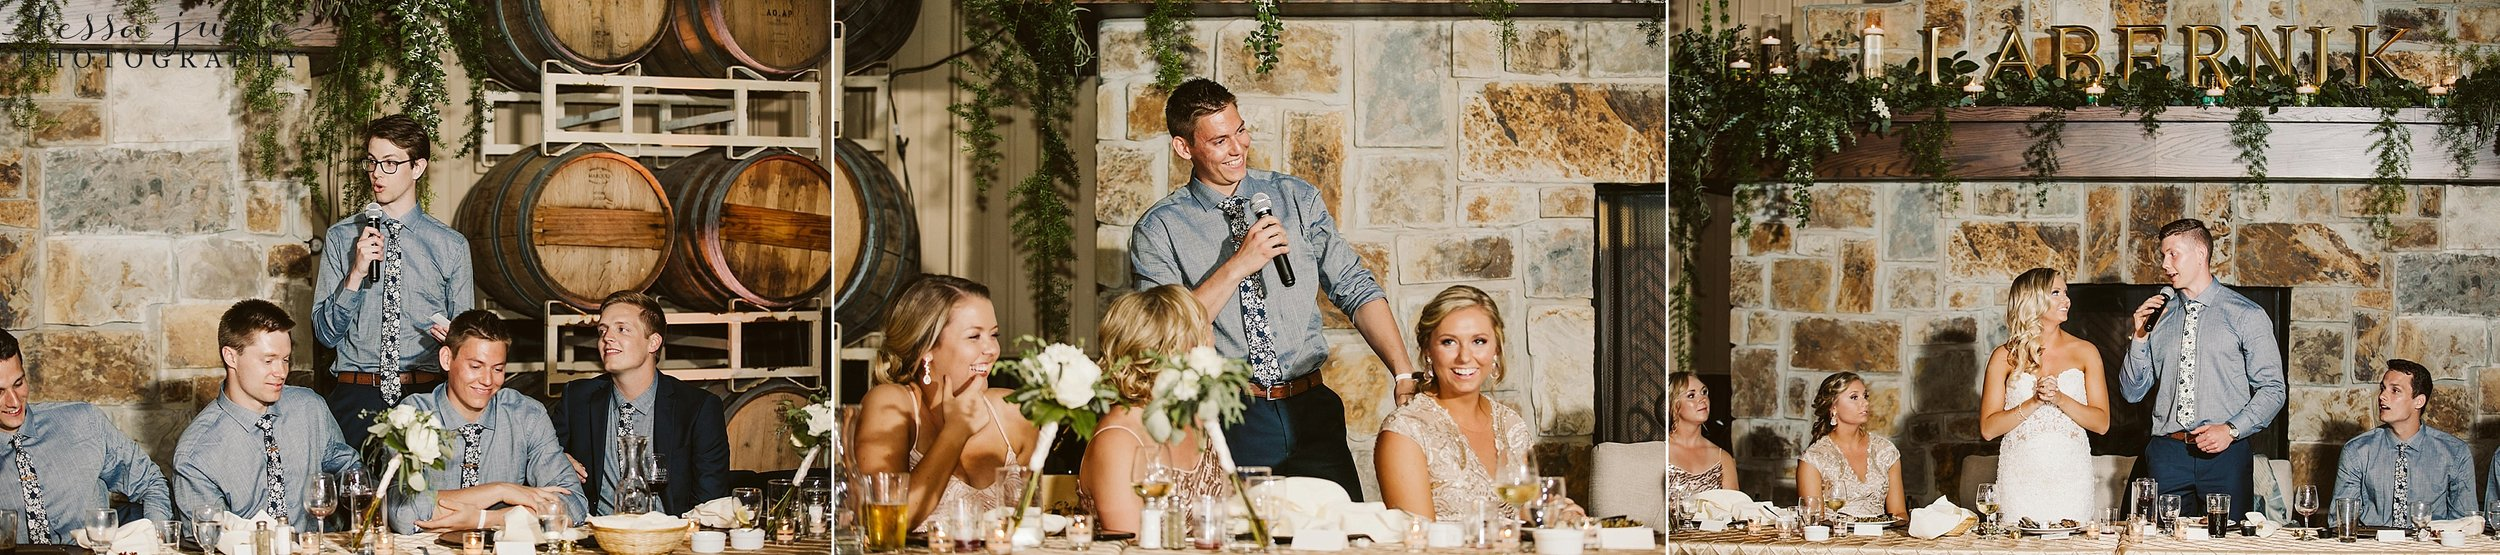 carlos-creek-winery-wedding-alexandria-minnesota-glam-elegant-floral-130.jpg